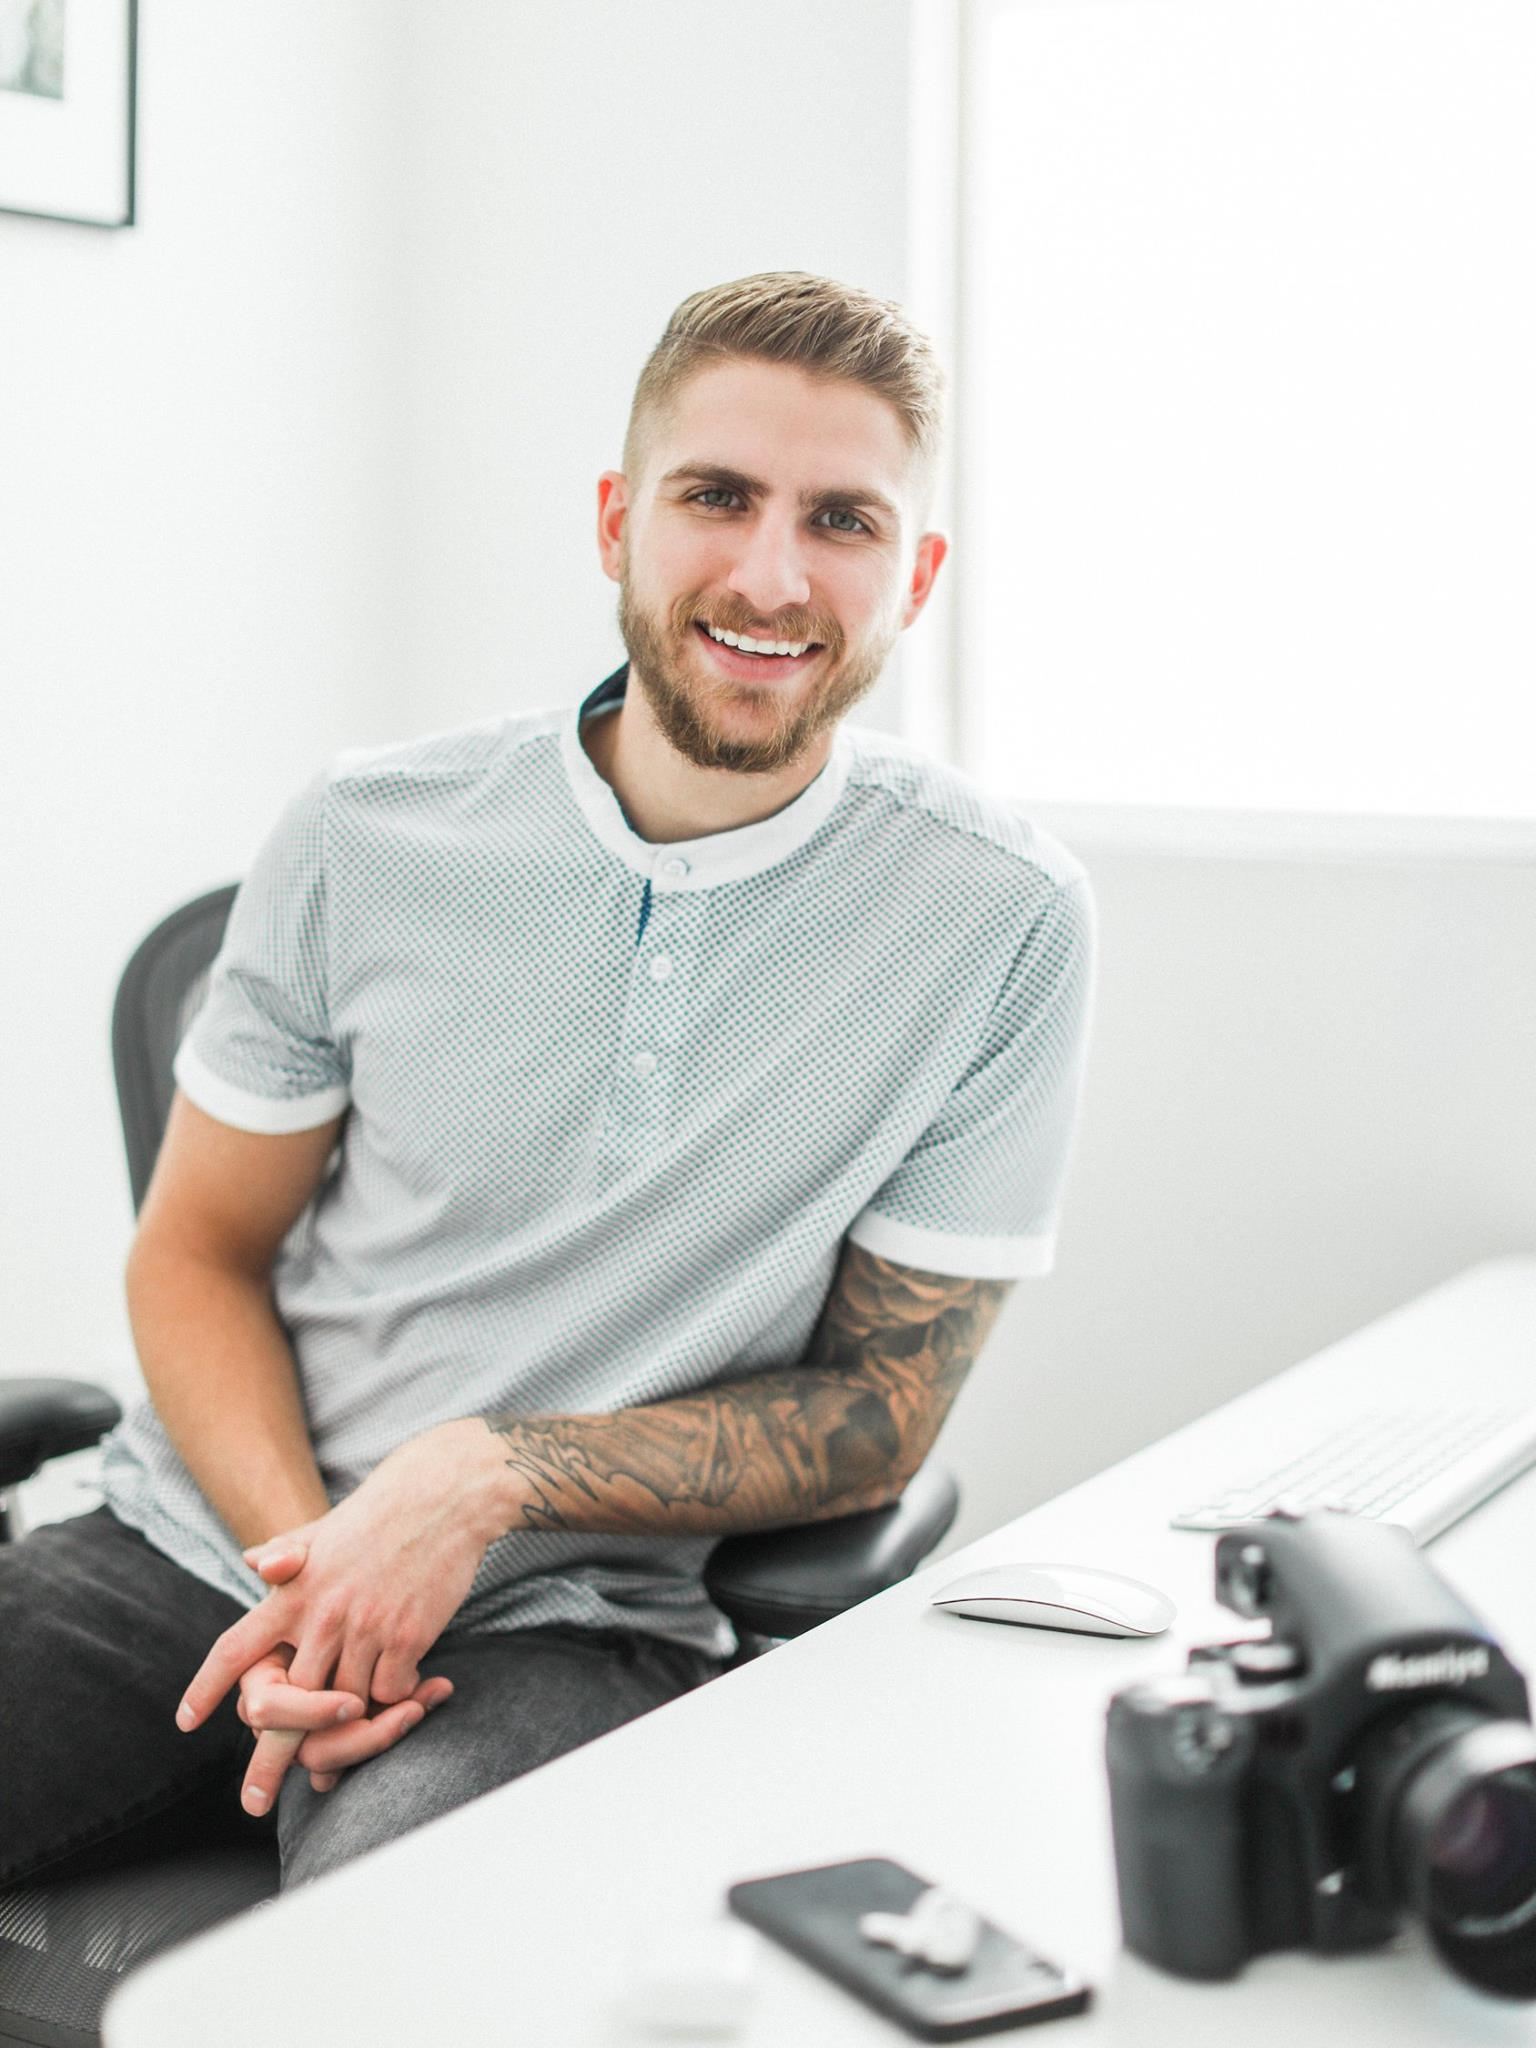 Monday, April 15, 2019Lucas RossiOwner of Lucas Rossi Photography - Listen on Spotify, SoundCloud & iTunesDo you struggle with finding your value? Finding value and that sweet pricing spot within your business can be super difficult. Today I chat with Lucas of Lucas Rossi Photography for a brilliant conversation. Lucas Rossi is a Luxury Wedding, Portrait Photographer with over 10 years in the industry, Lucas' raw talent for photography has made him stand out, but its his passion for running his business, competitive spirit and generous soul that has made him successful.https://lucasrossiphotography.com/